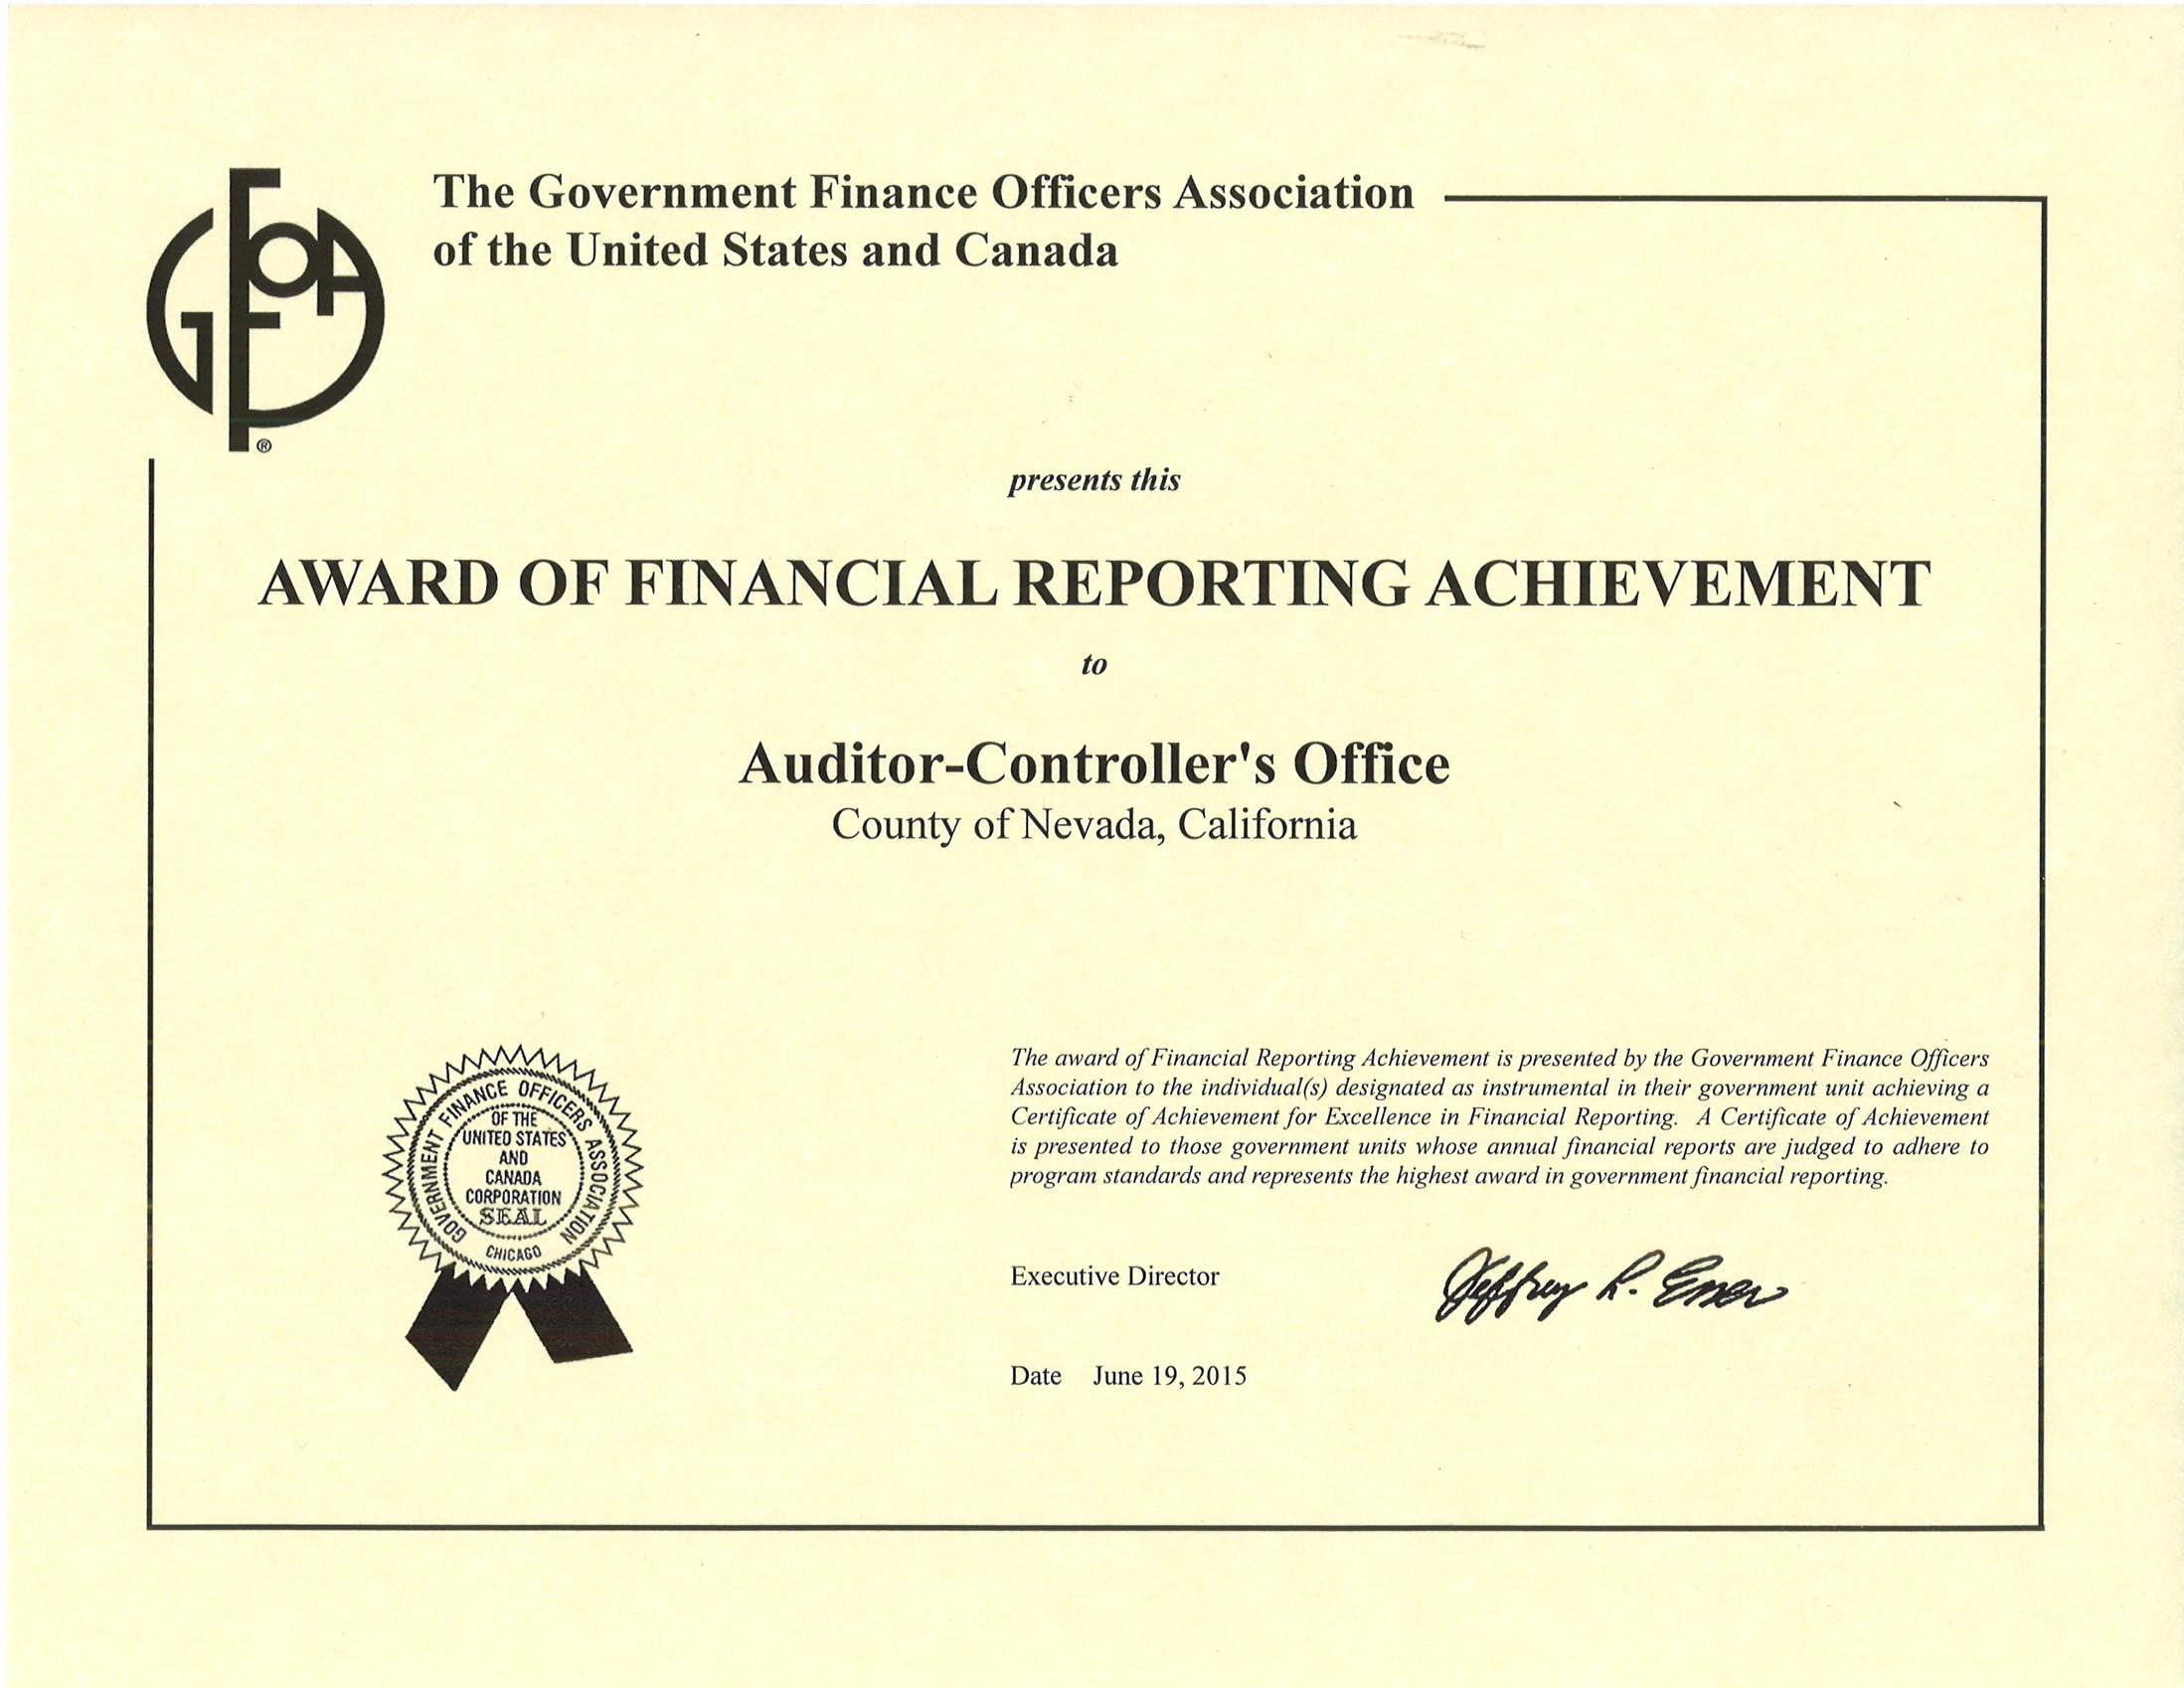 Award of Financial Reporting Achievement Certificate